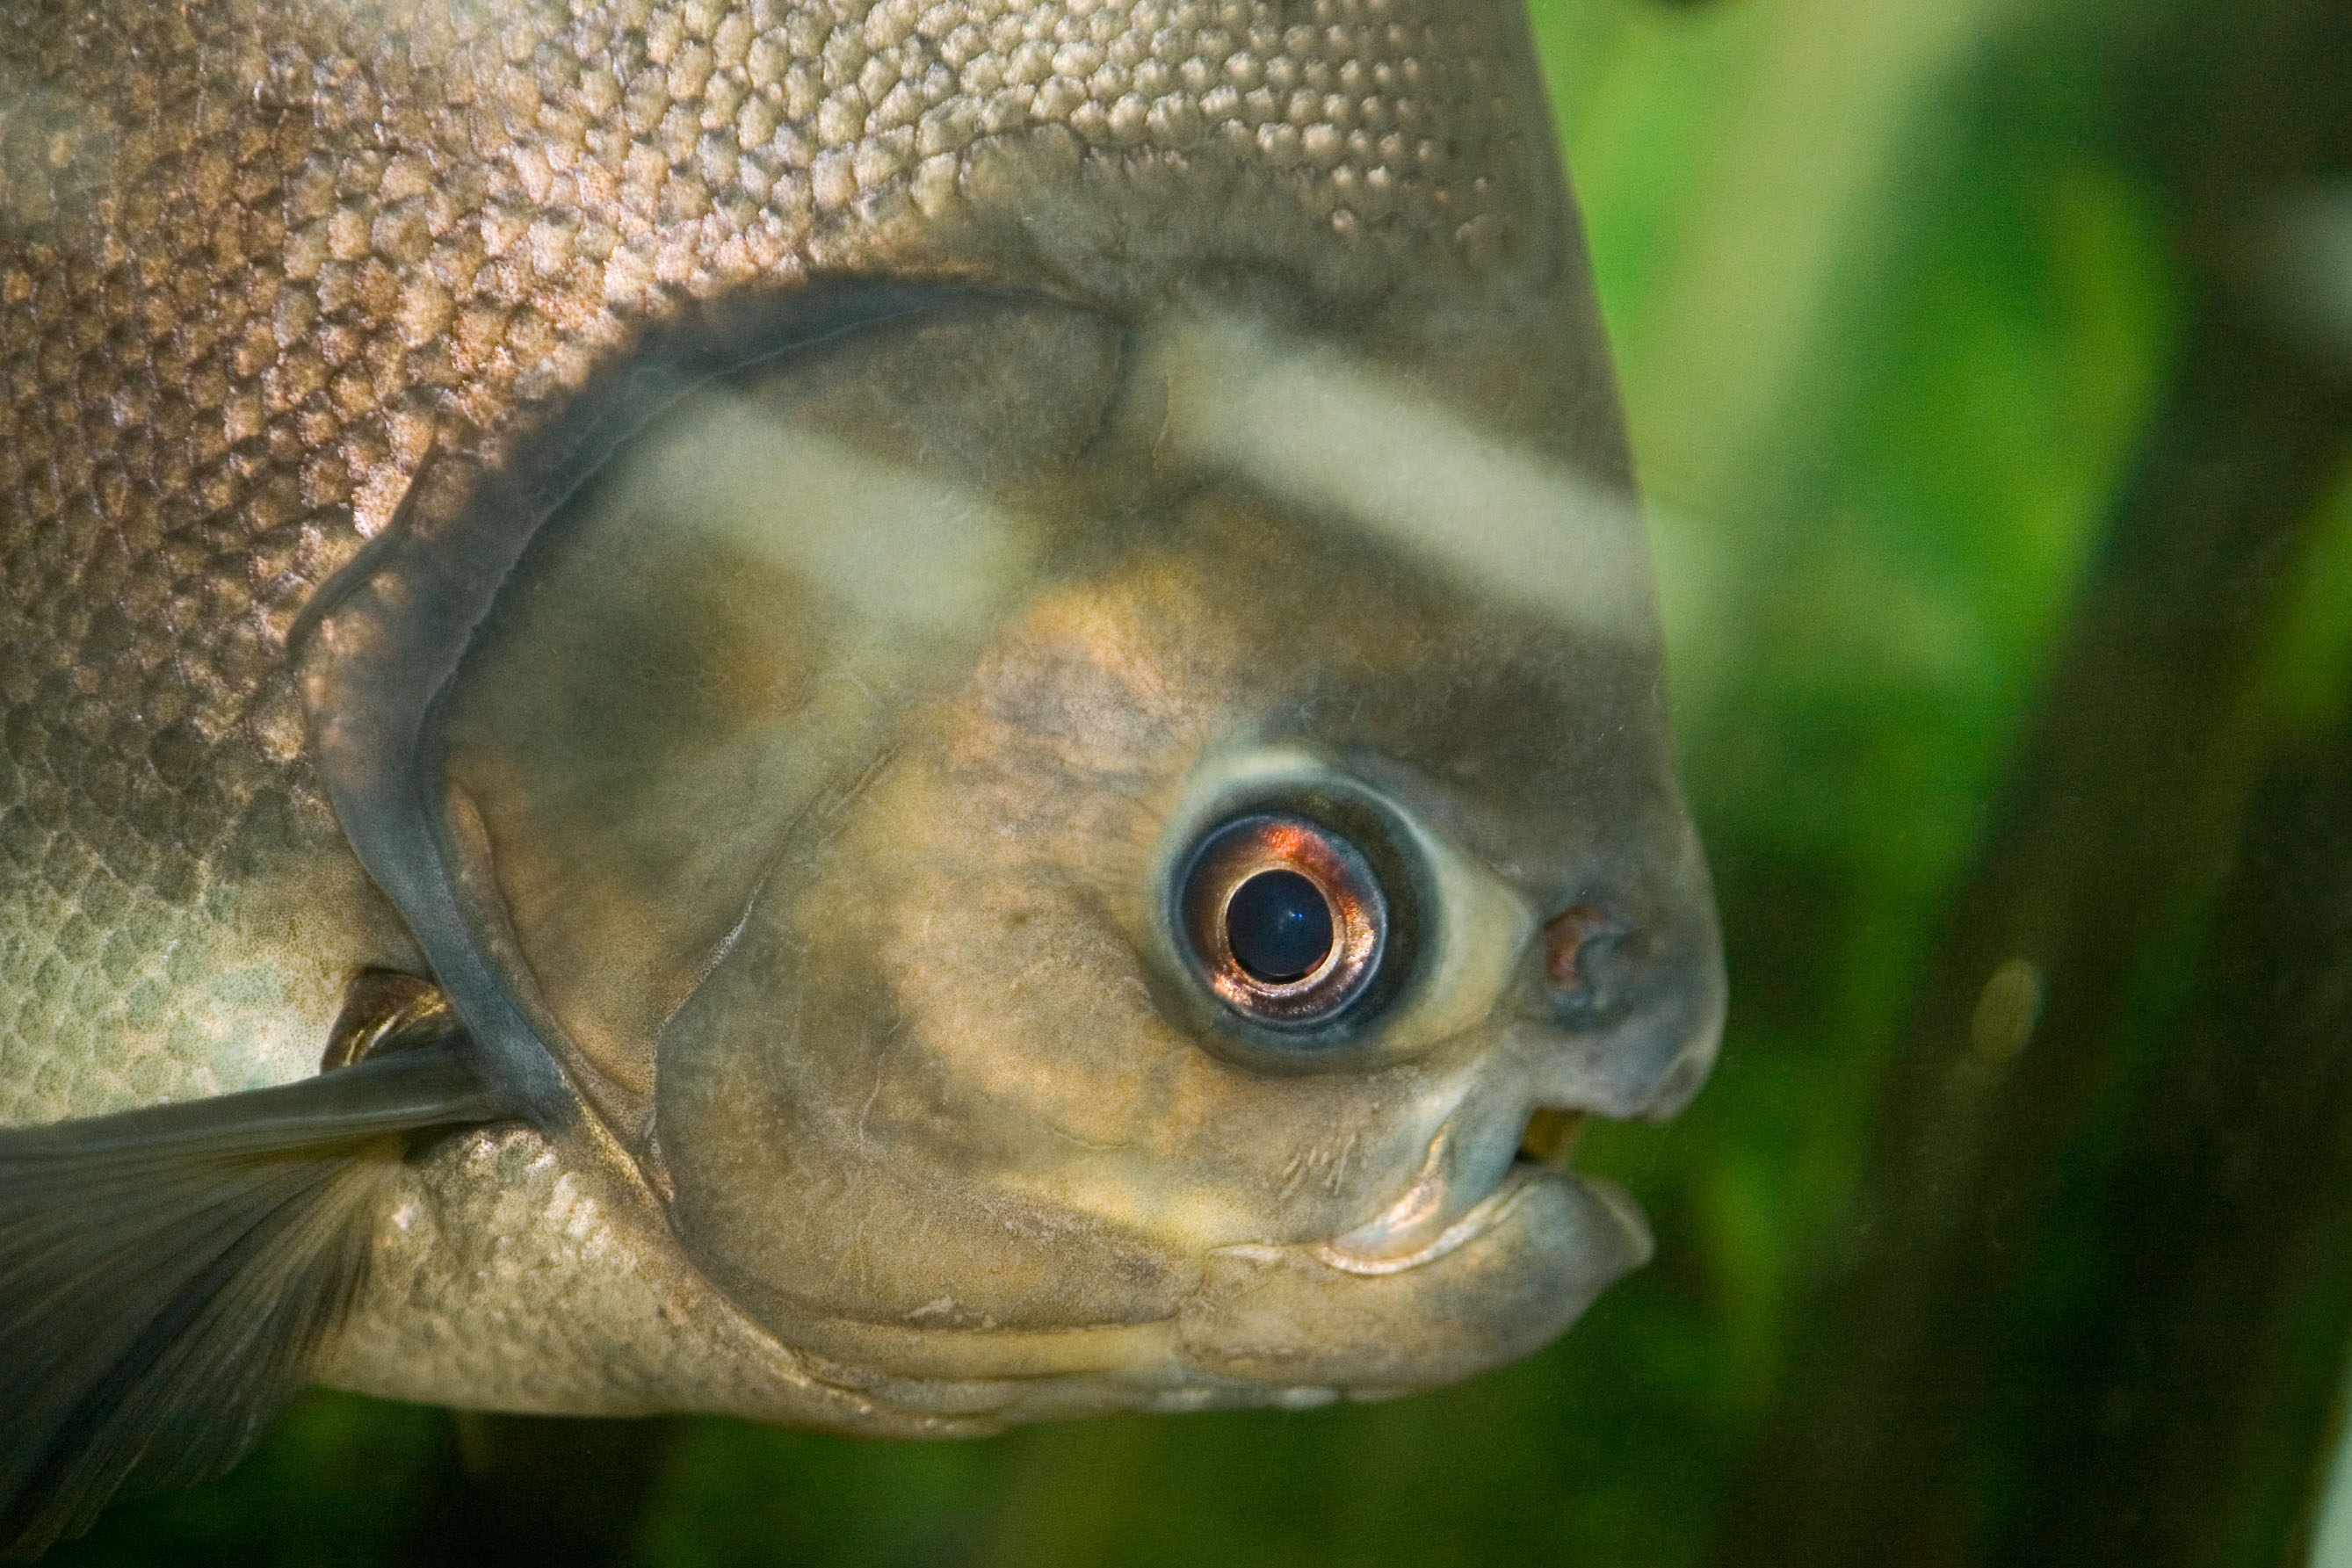 The Pacu is native to South American, and is closely related to the piranha.